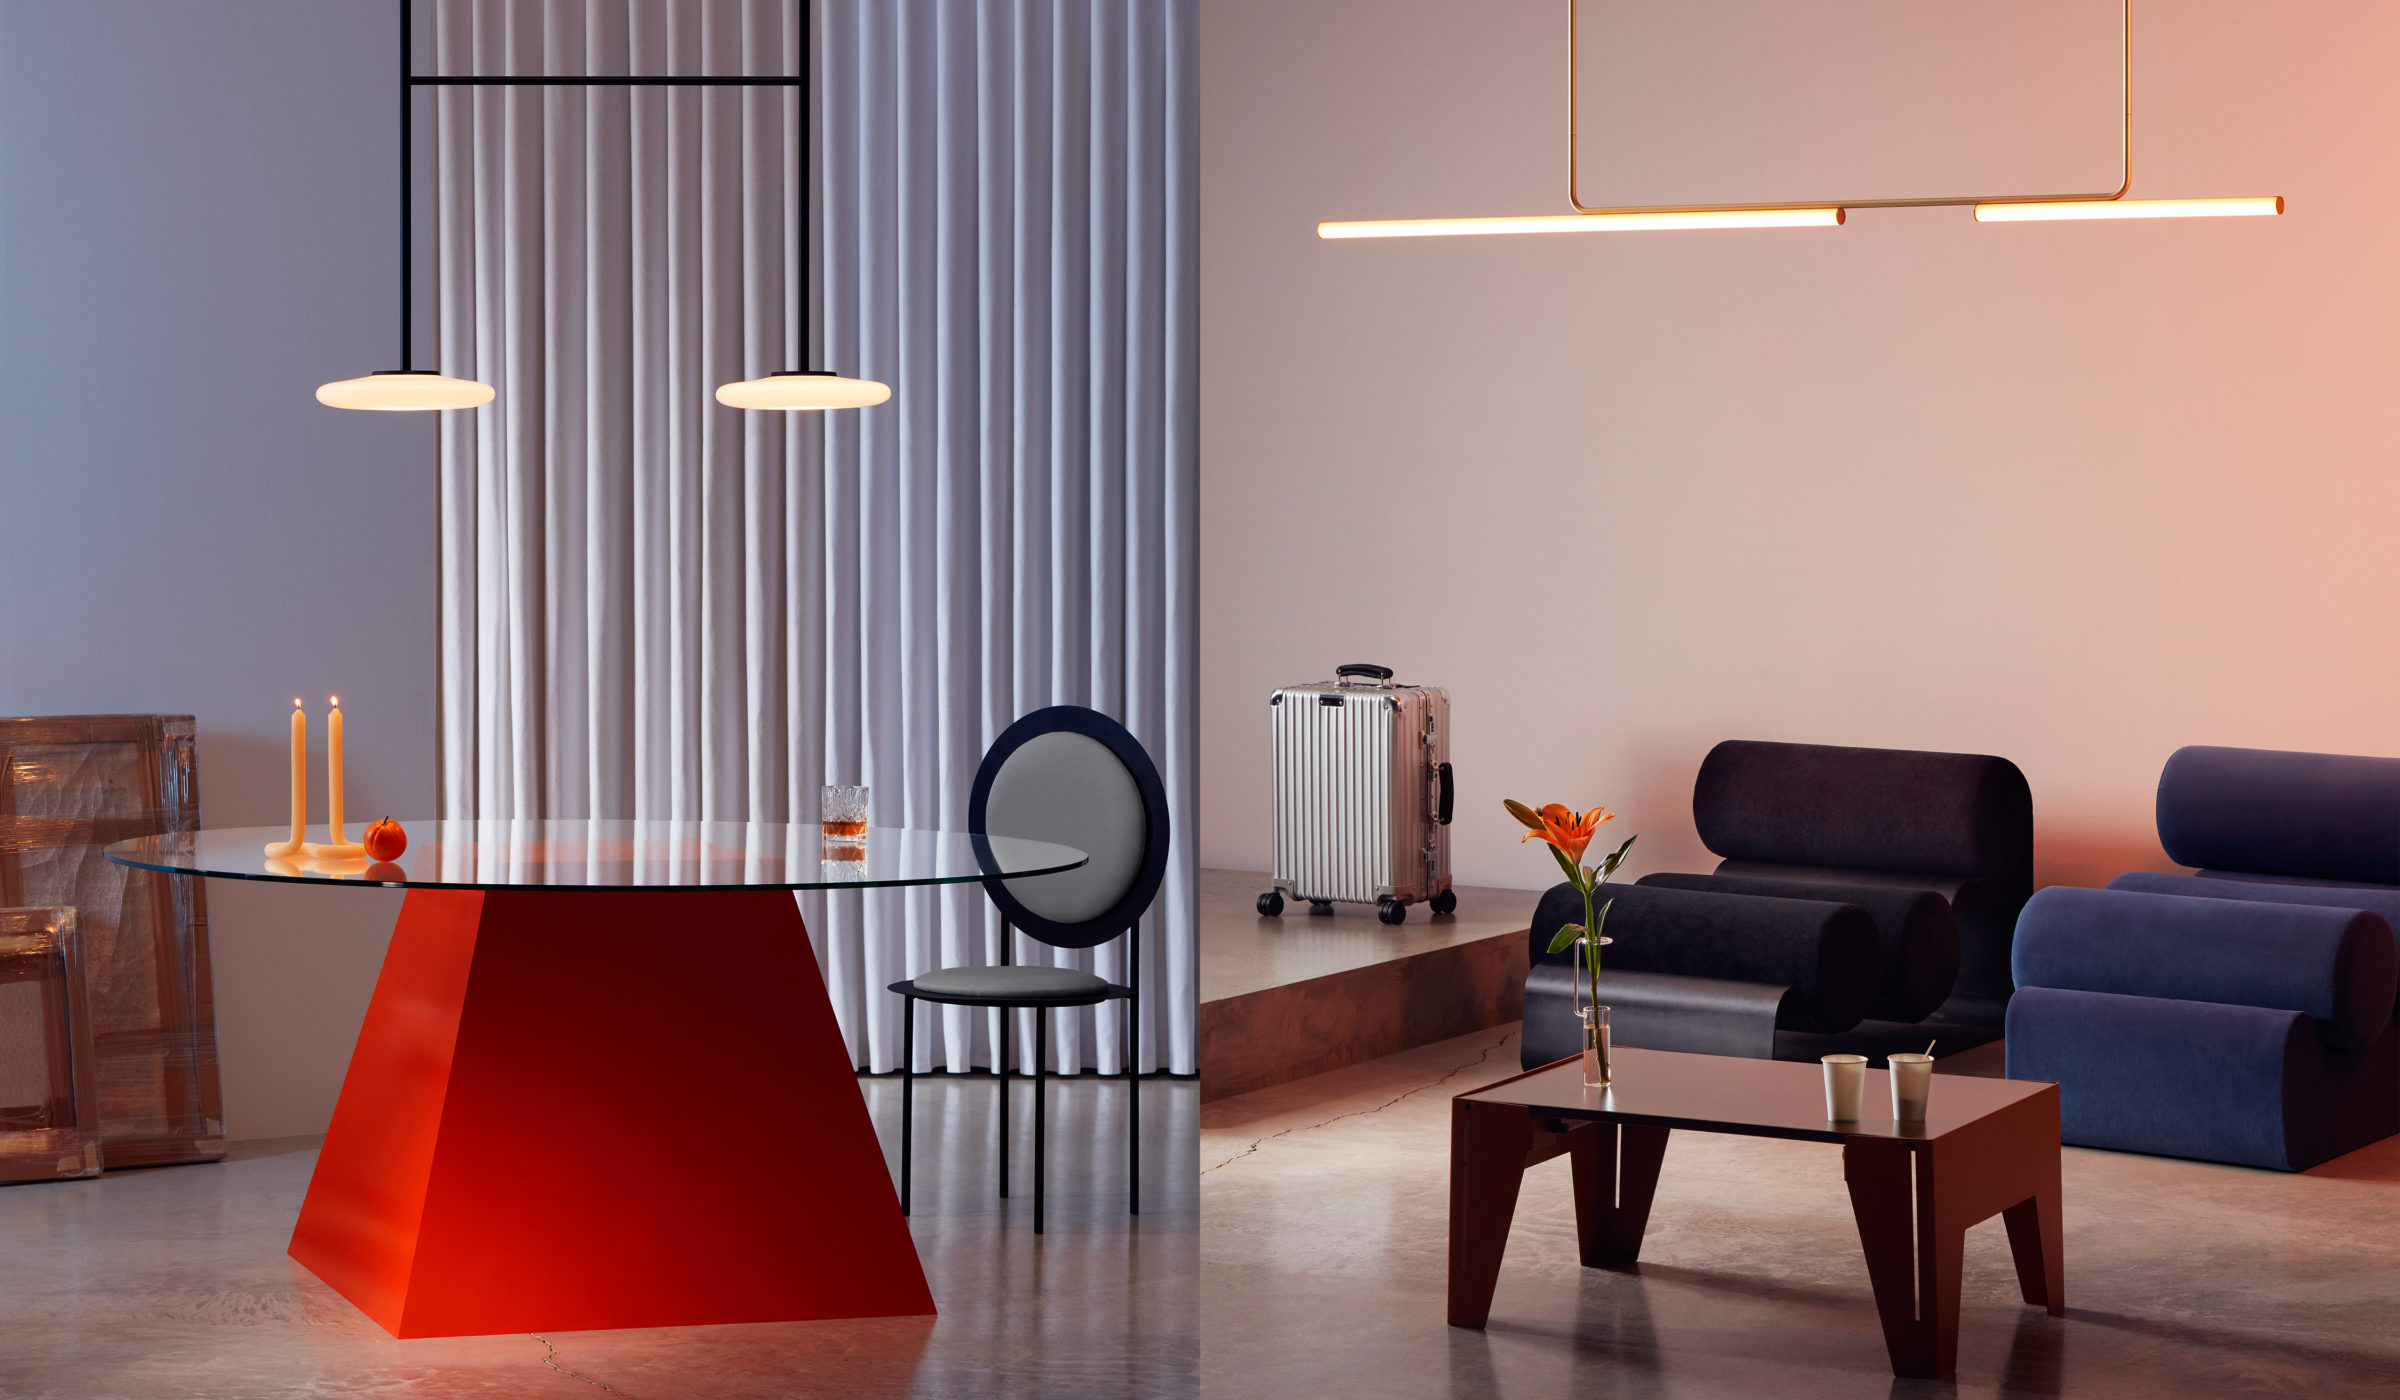 FOLCH - Lighting compositions